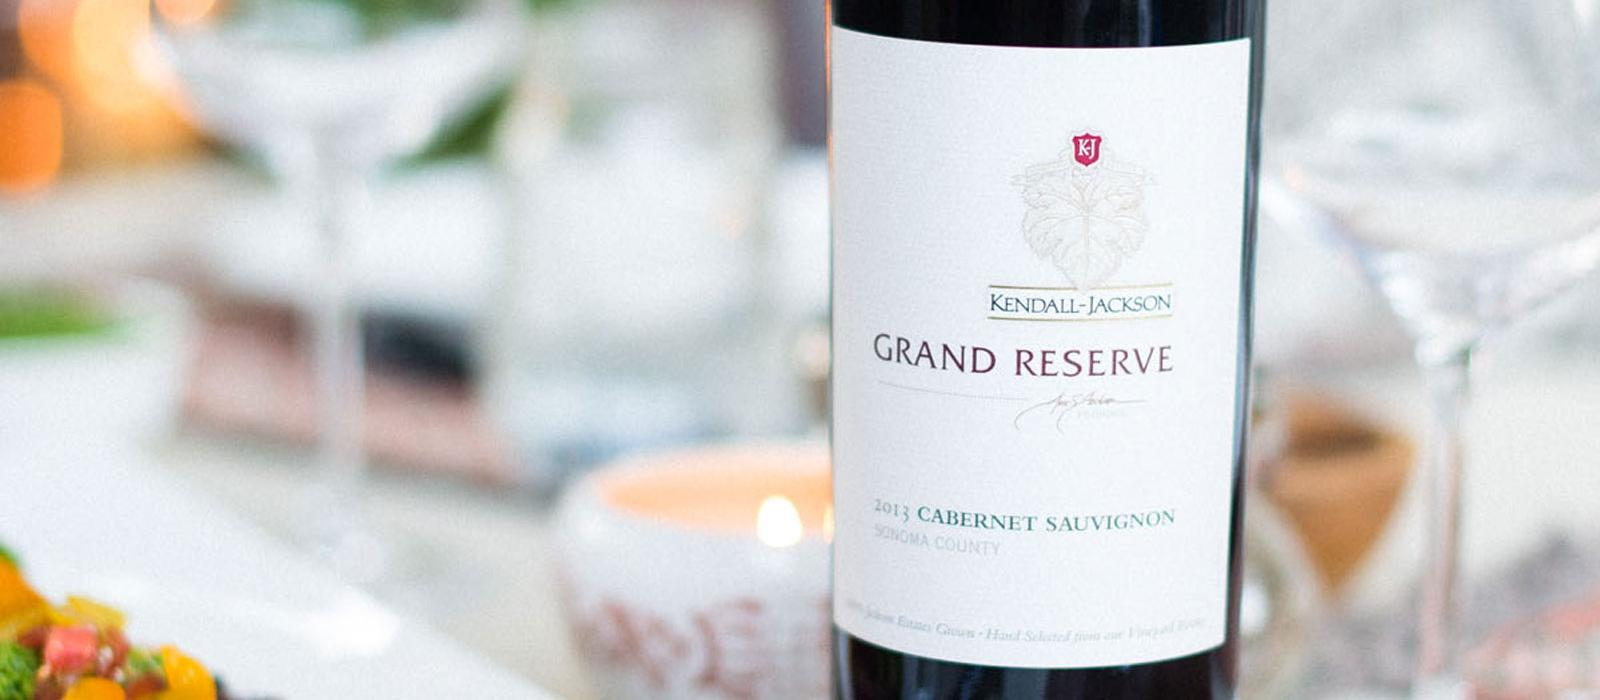 Kendall-Jackson's Grand Reserve Wine Collection